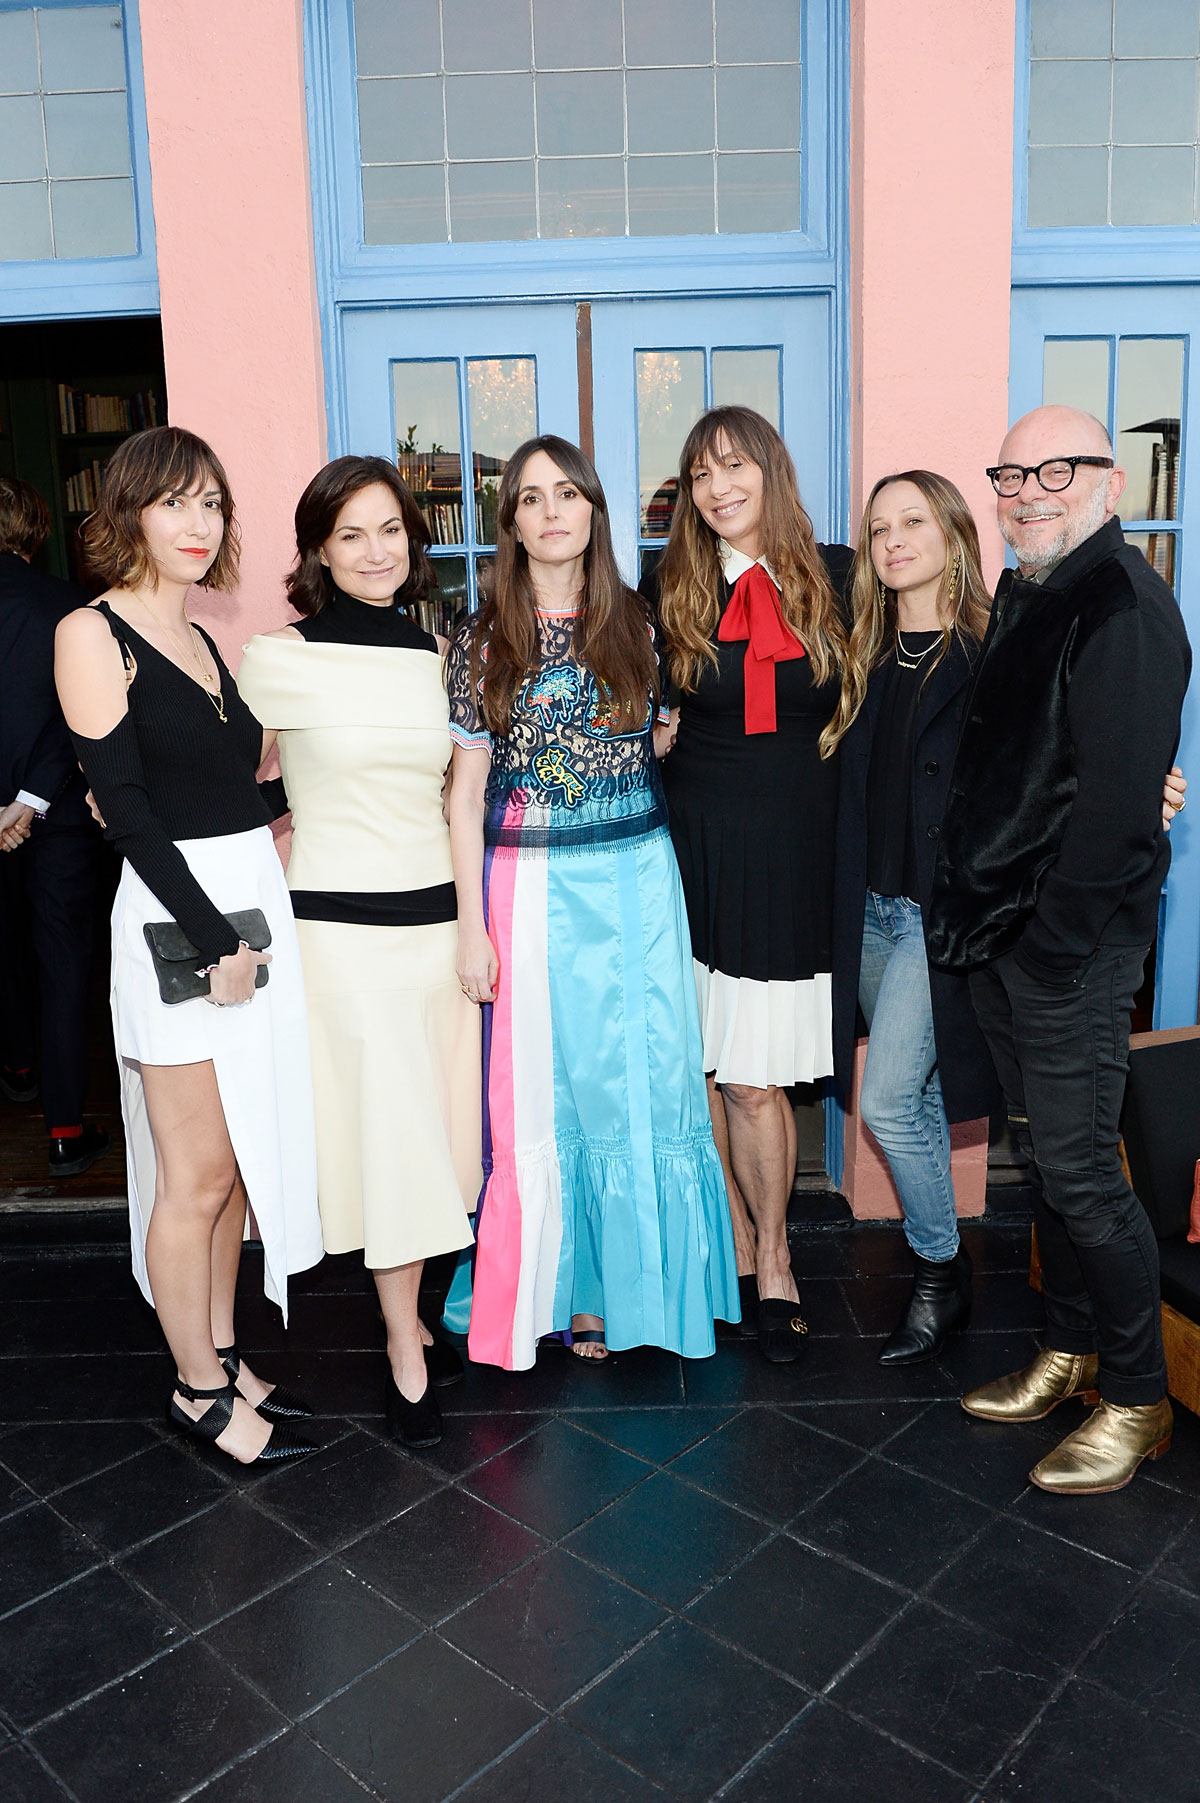 Gia Coppola; Rossetta Getty; Tania Fares, Jacqui Getty, Jennifer Meyer and Eric Buterbaugh celebrate the launch of London Uprising Fifty Fashion Designers One City on April 18, 2017 in Los Angeles, California. (Photo by Stefanie Keenan/Getty Images for Tania Fares)